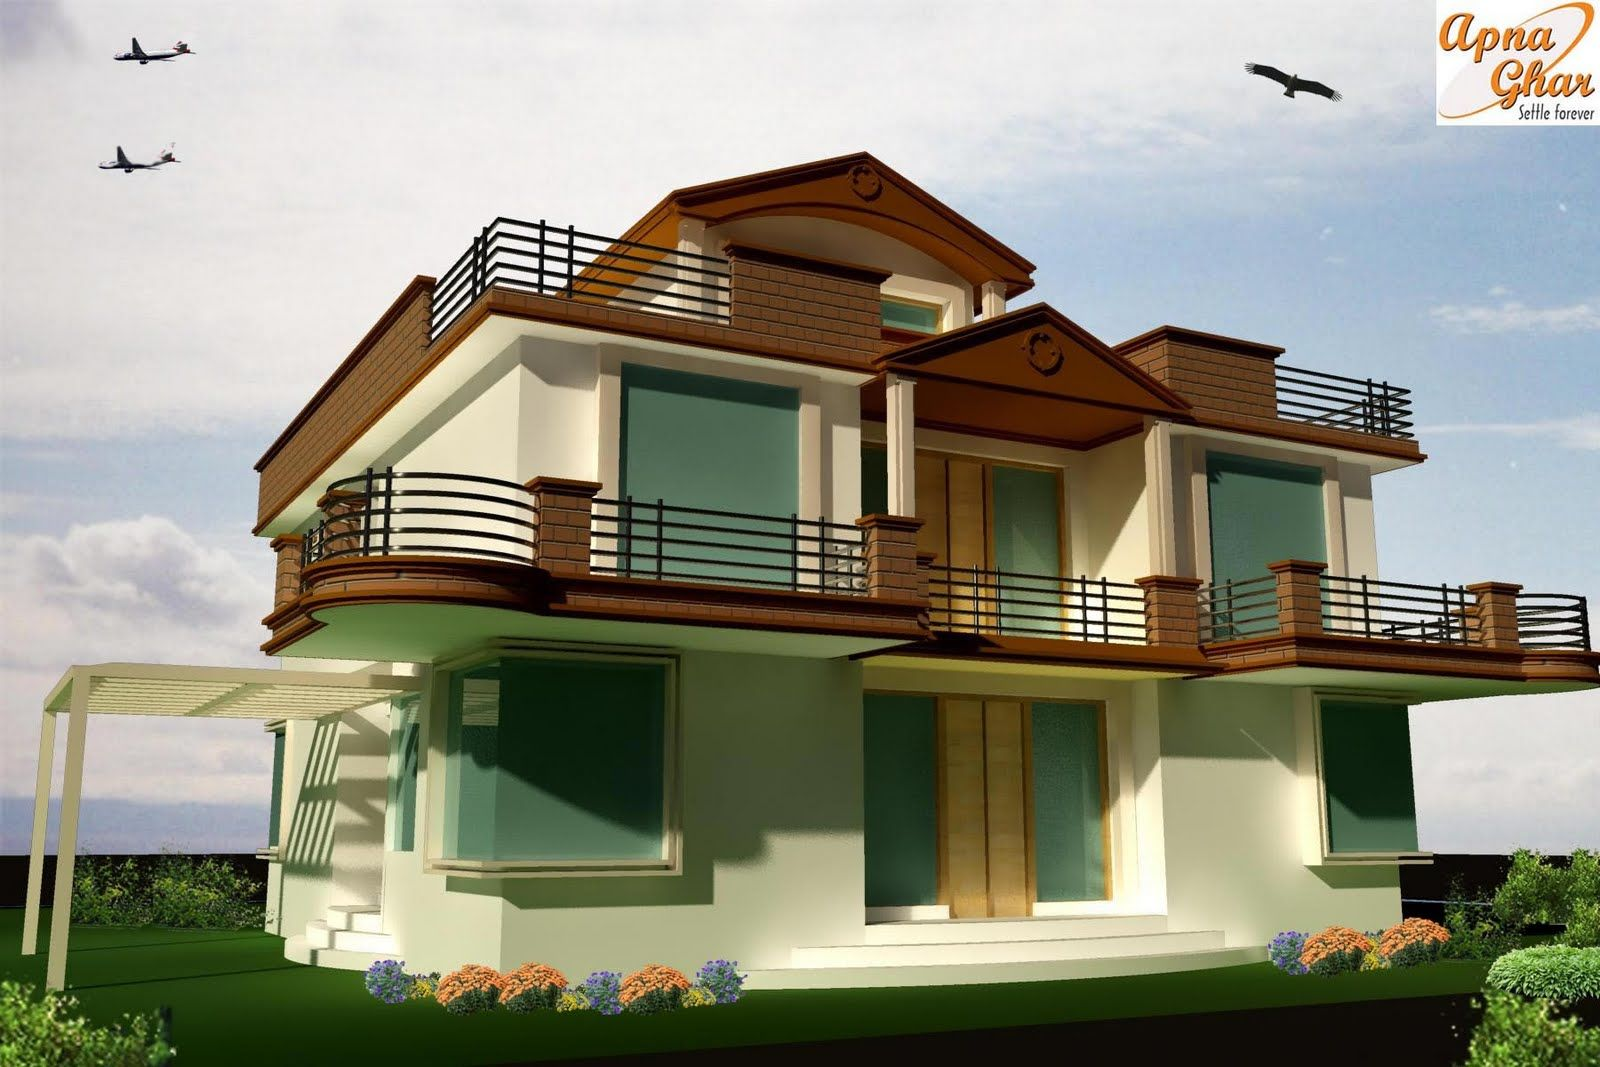 Architectural designs modern architectural house plans for Architect design house plans